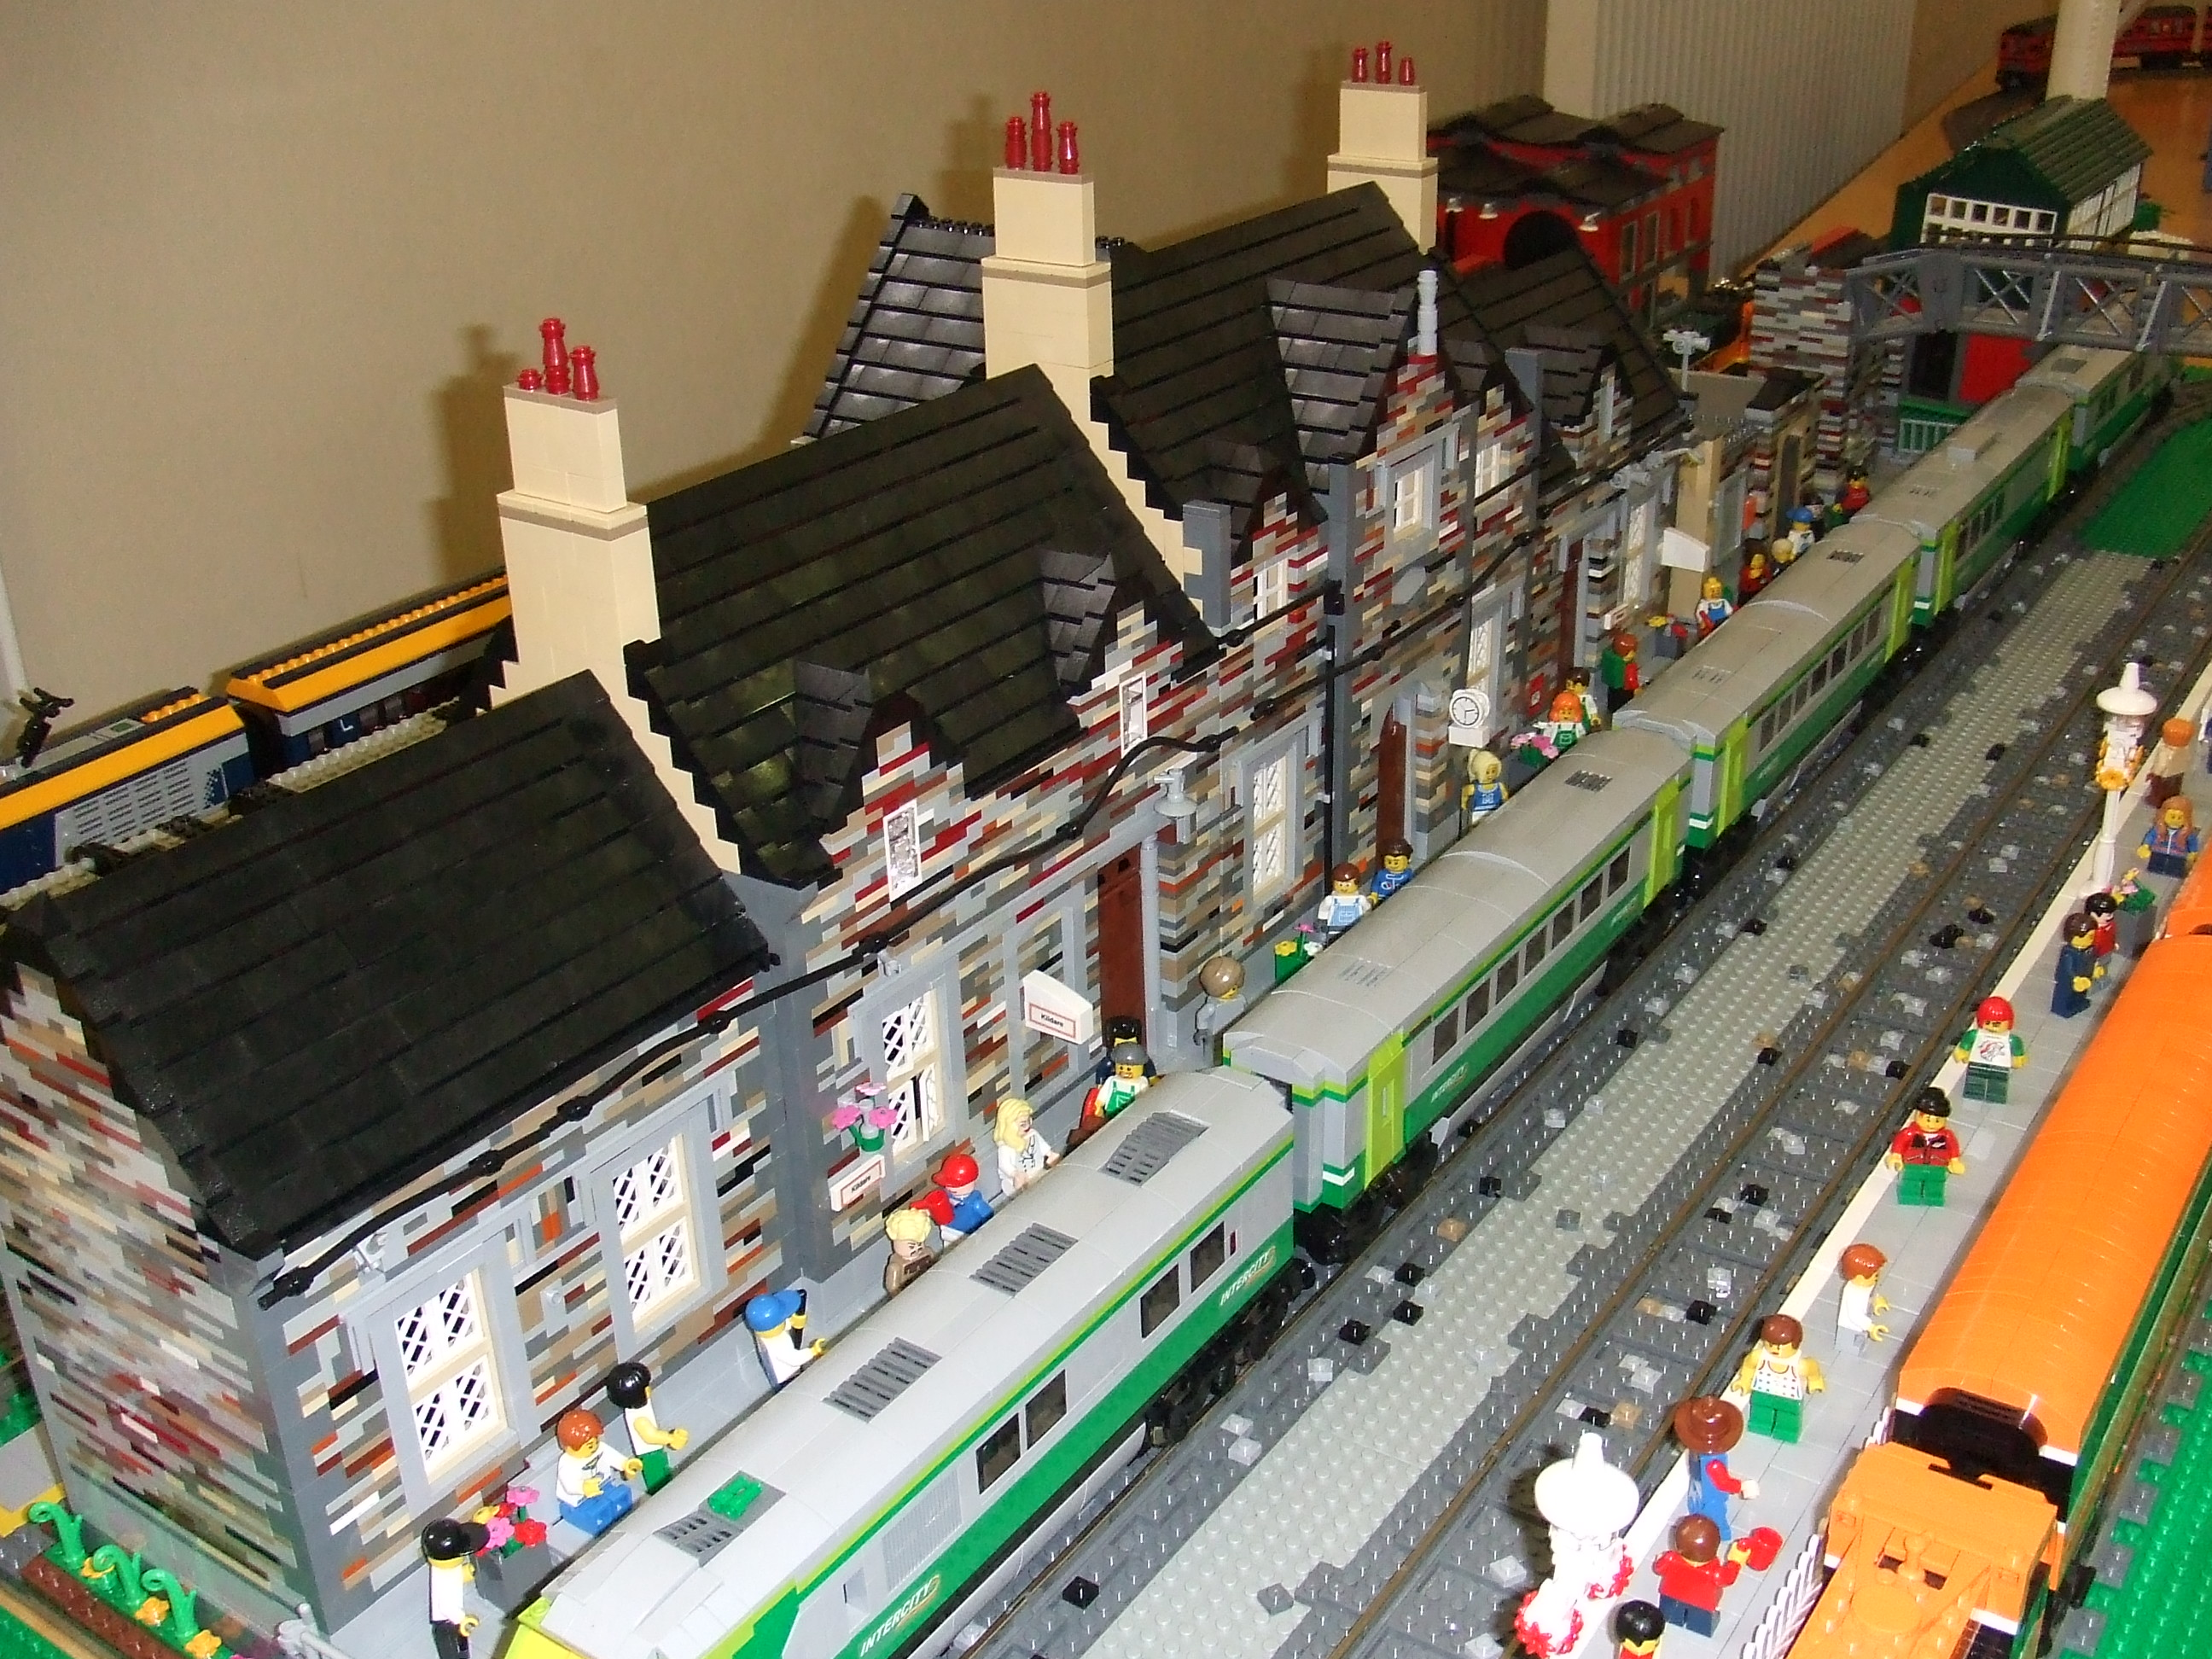 Birr Library Lego Exhibition - Kildare Train Station by Breda Fennell and David Fennell